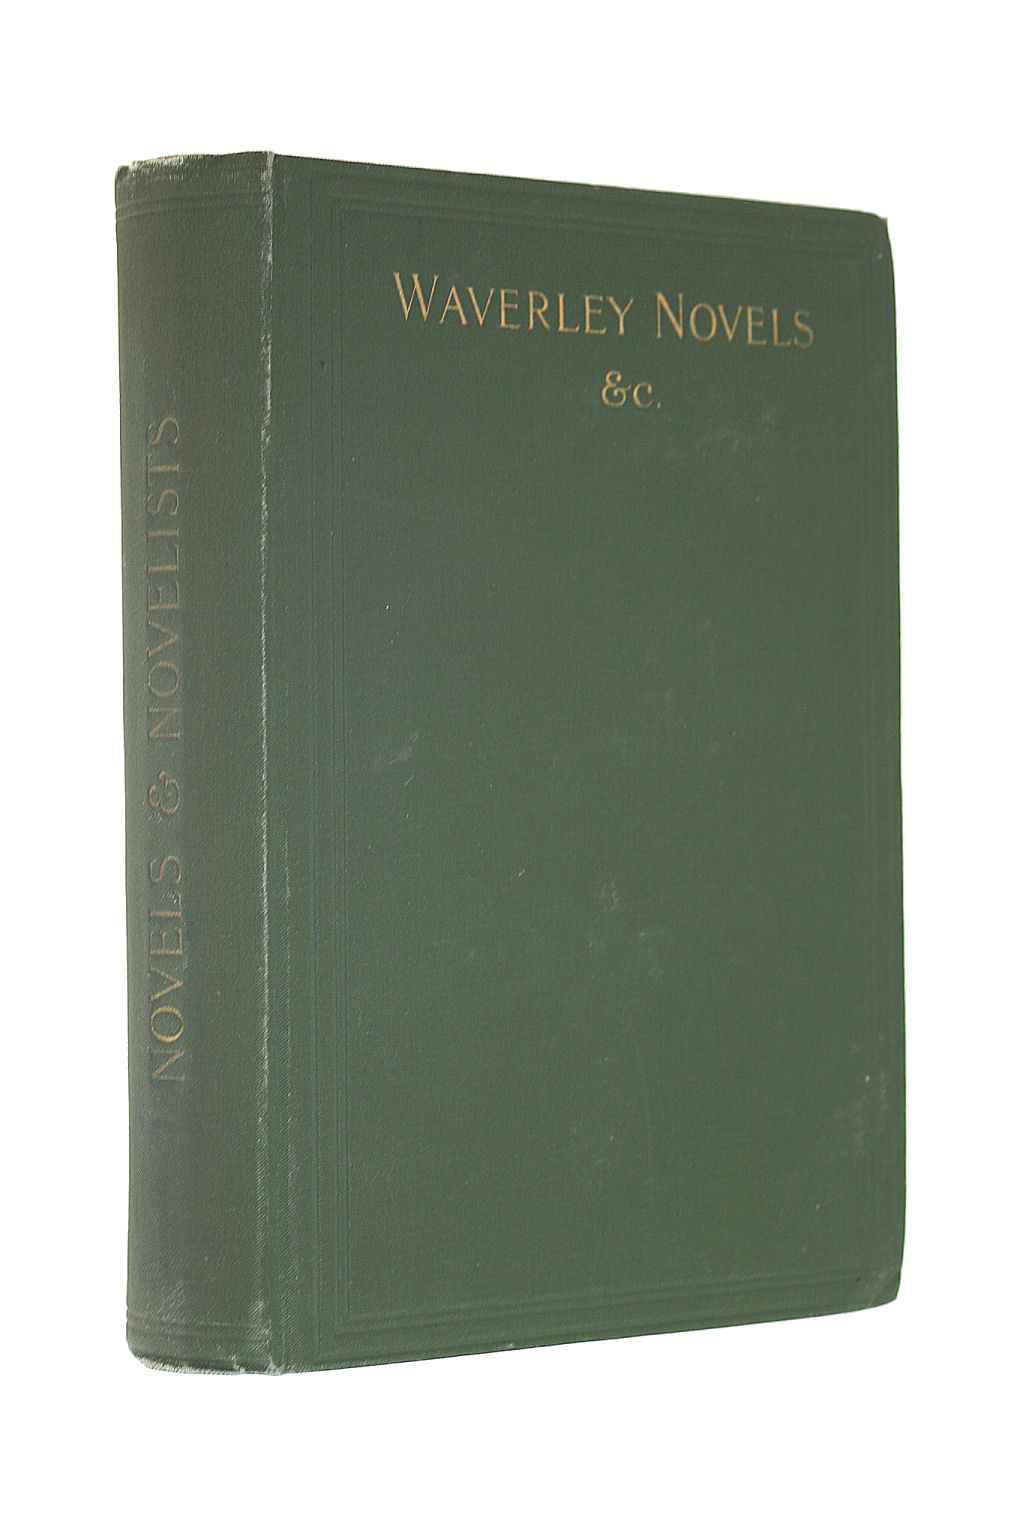 Image for Novels and Novelists. Chapters on the Waverley Novels ... With other Novel articles